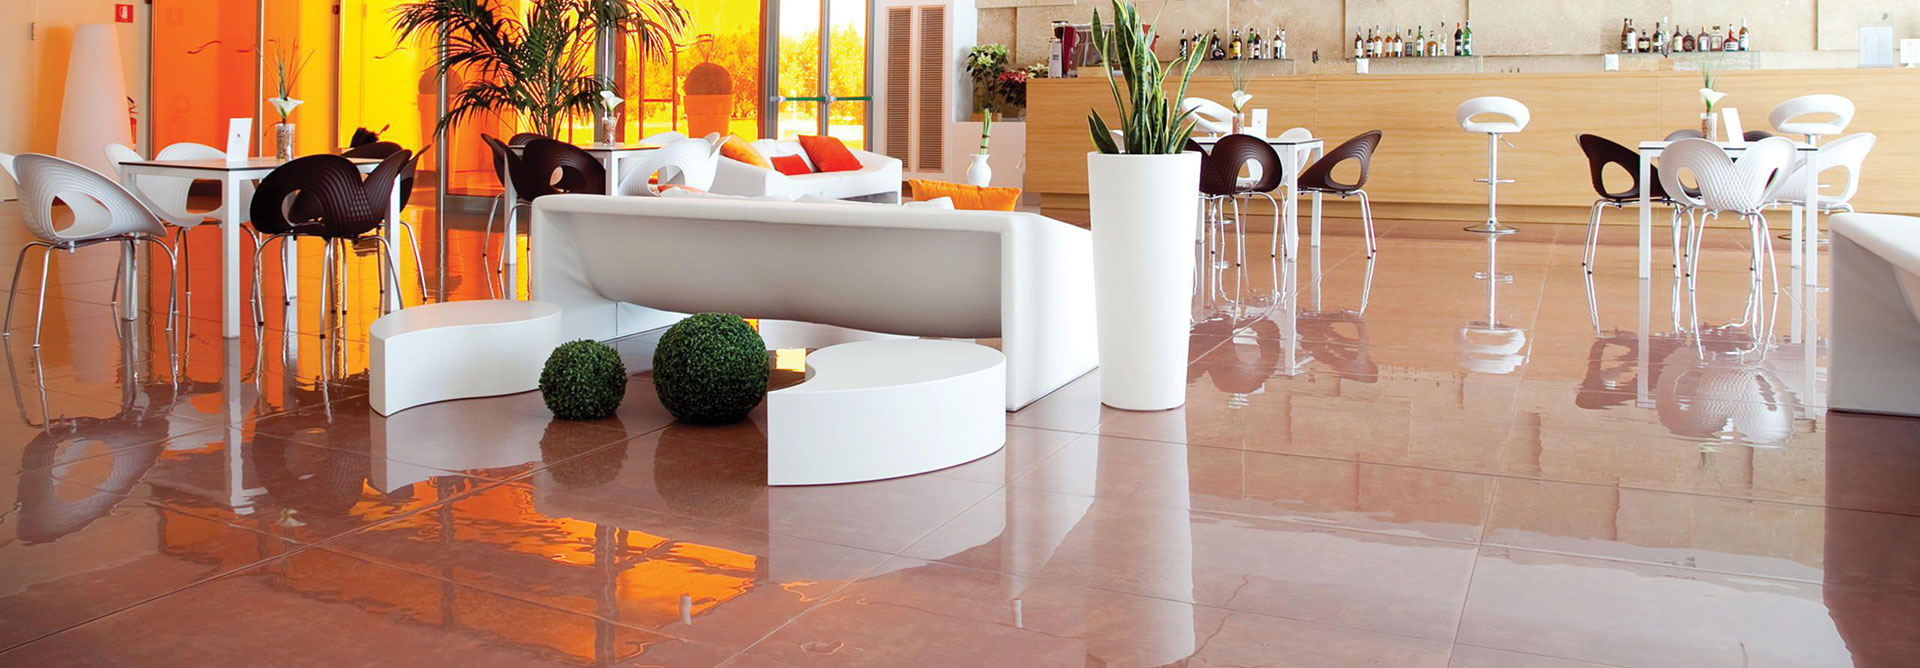 Fmg Active Ecoactive Antipollutant Hightech Ceramic Floors